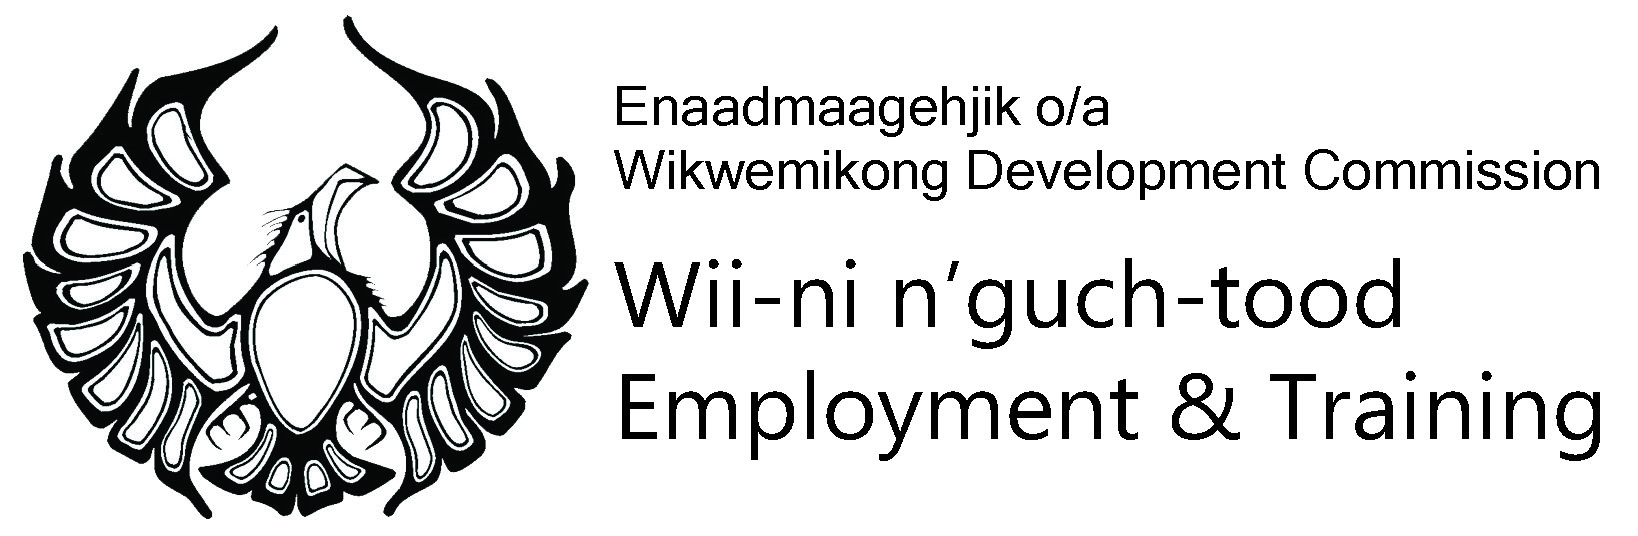 Wii-ni n'guch-tood Labour Market Services